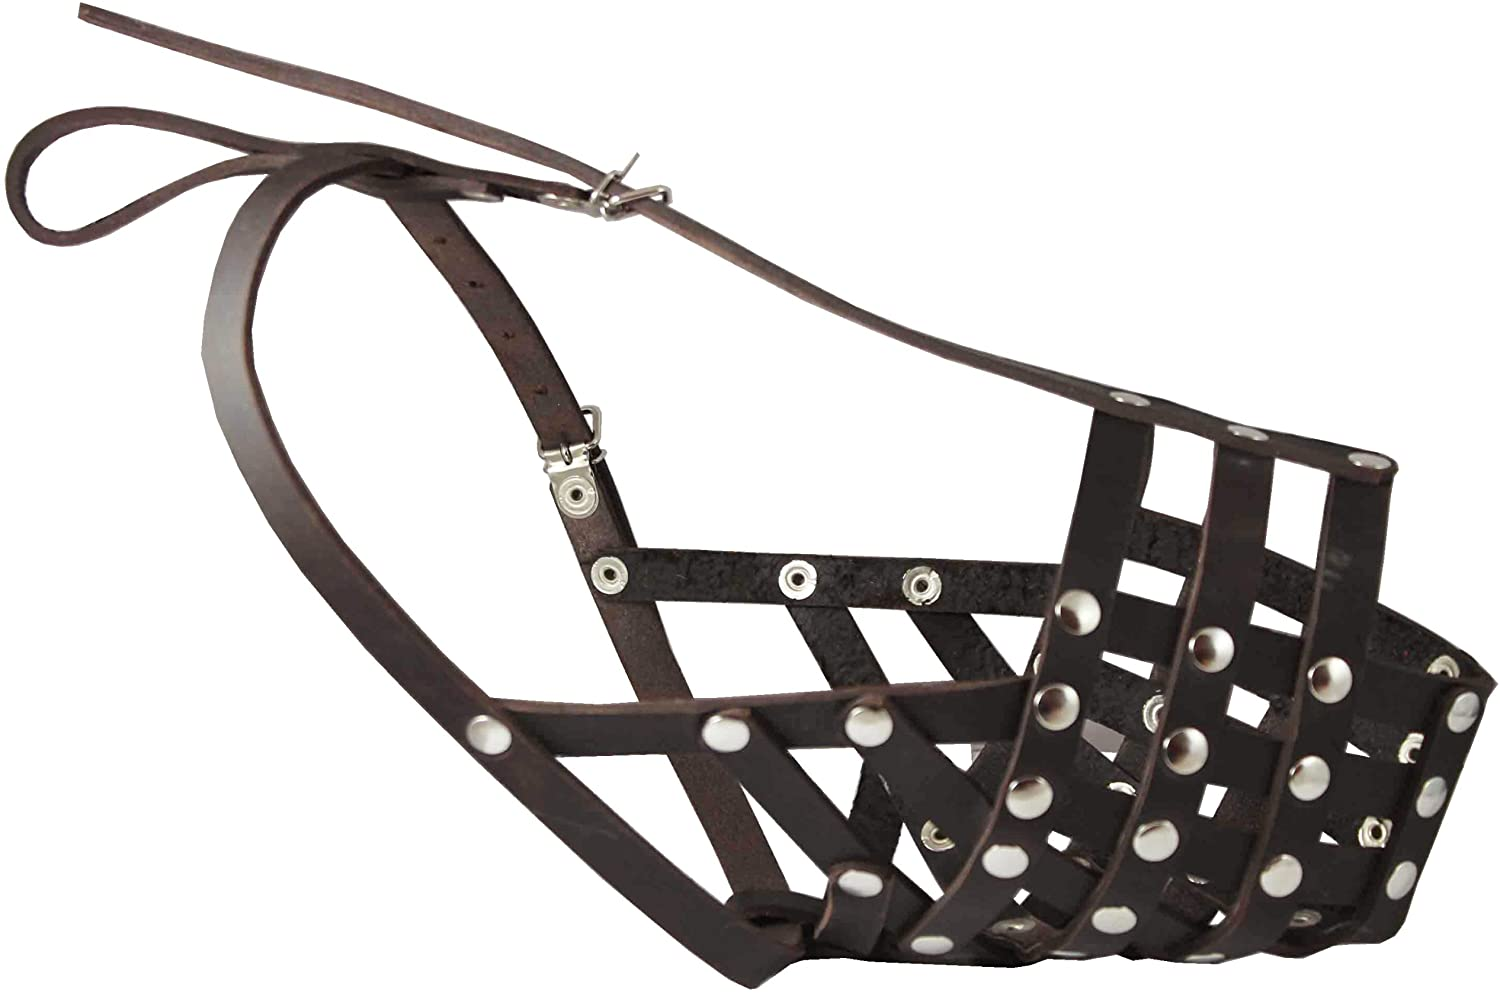 Secure Genuine Leather Mesh Dog Basket Muzzle Brown - Pit Bull, (Circumference 12.5